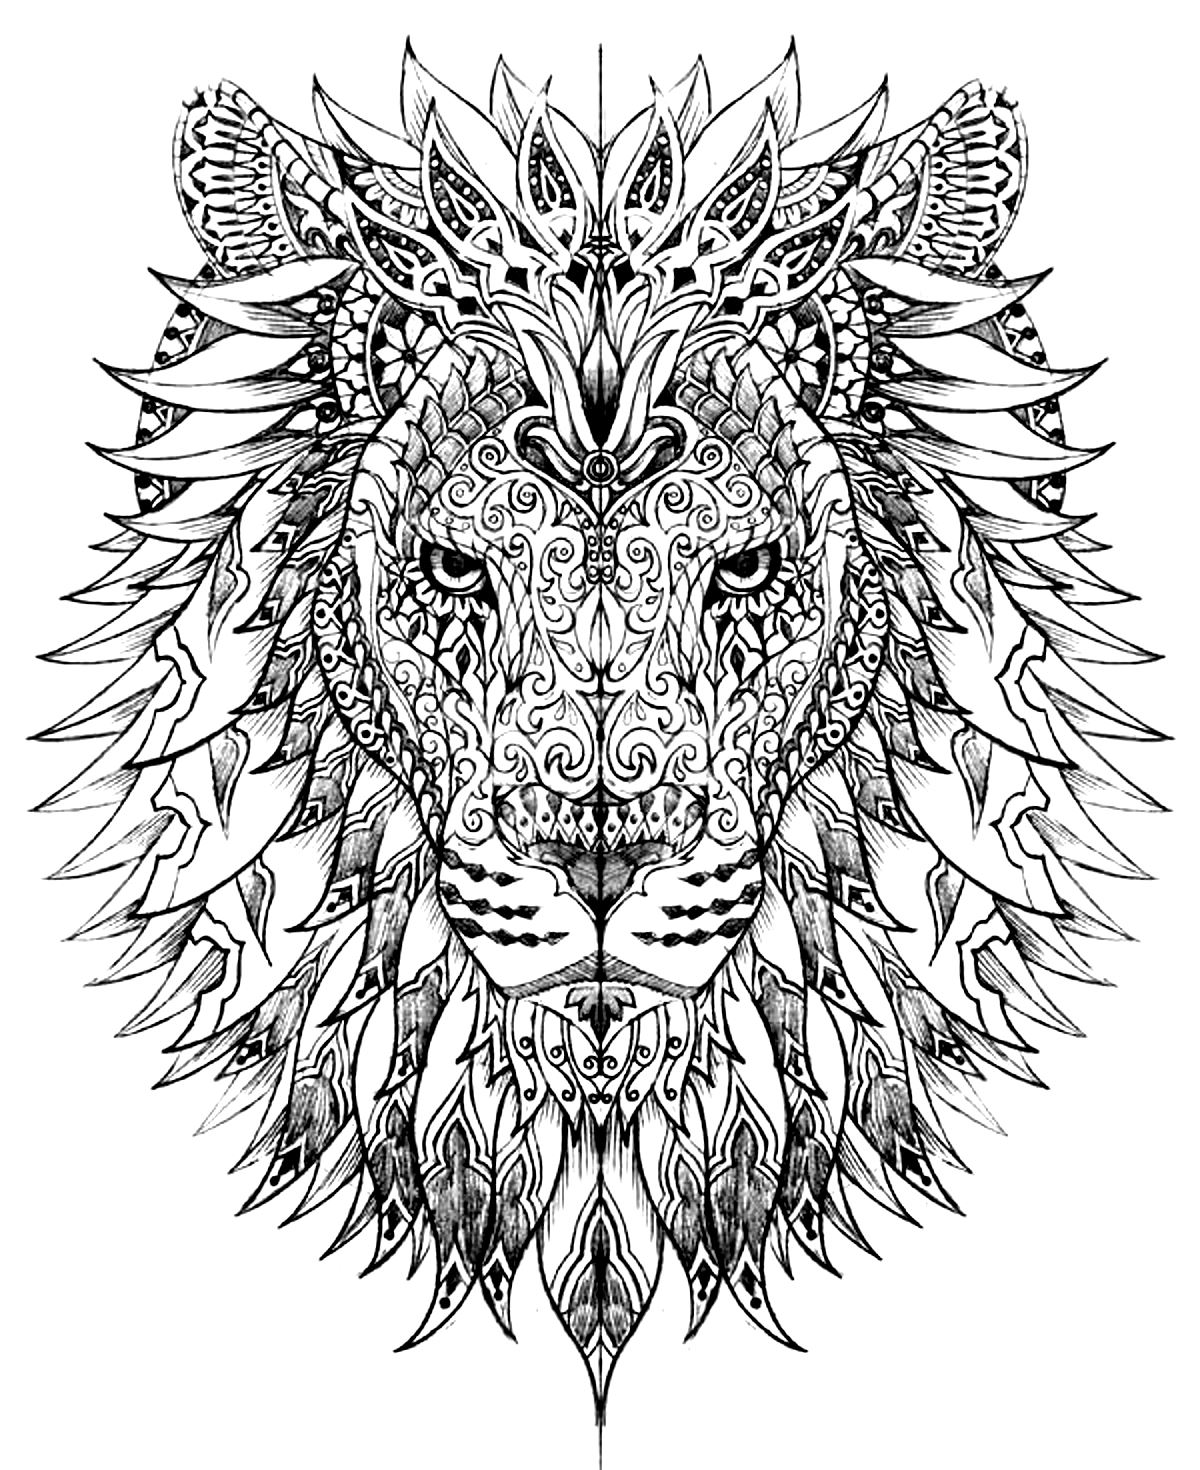 Lion Head Coloring Page : coloring, Animals, Coloring, Pages, Mandalas, Anti-stress